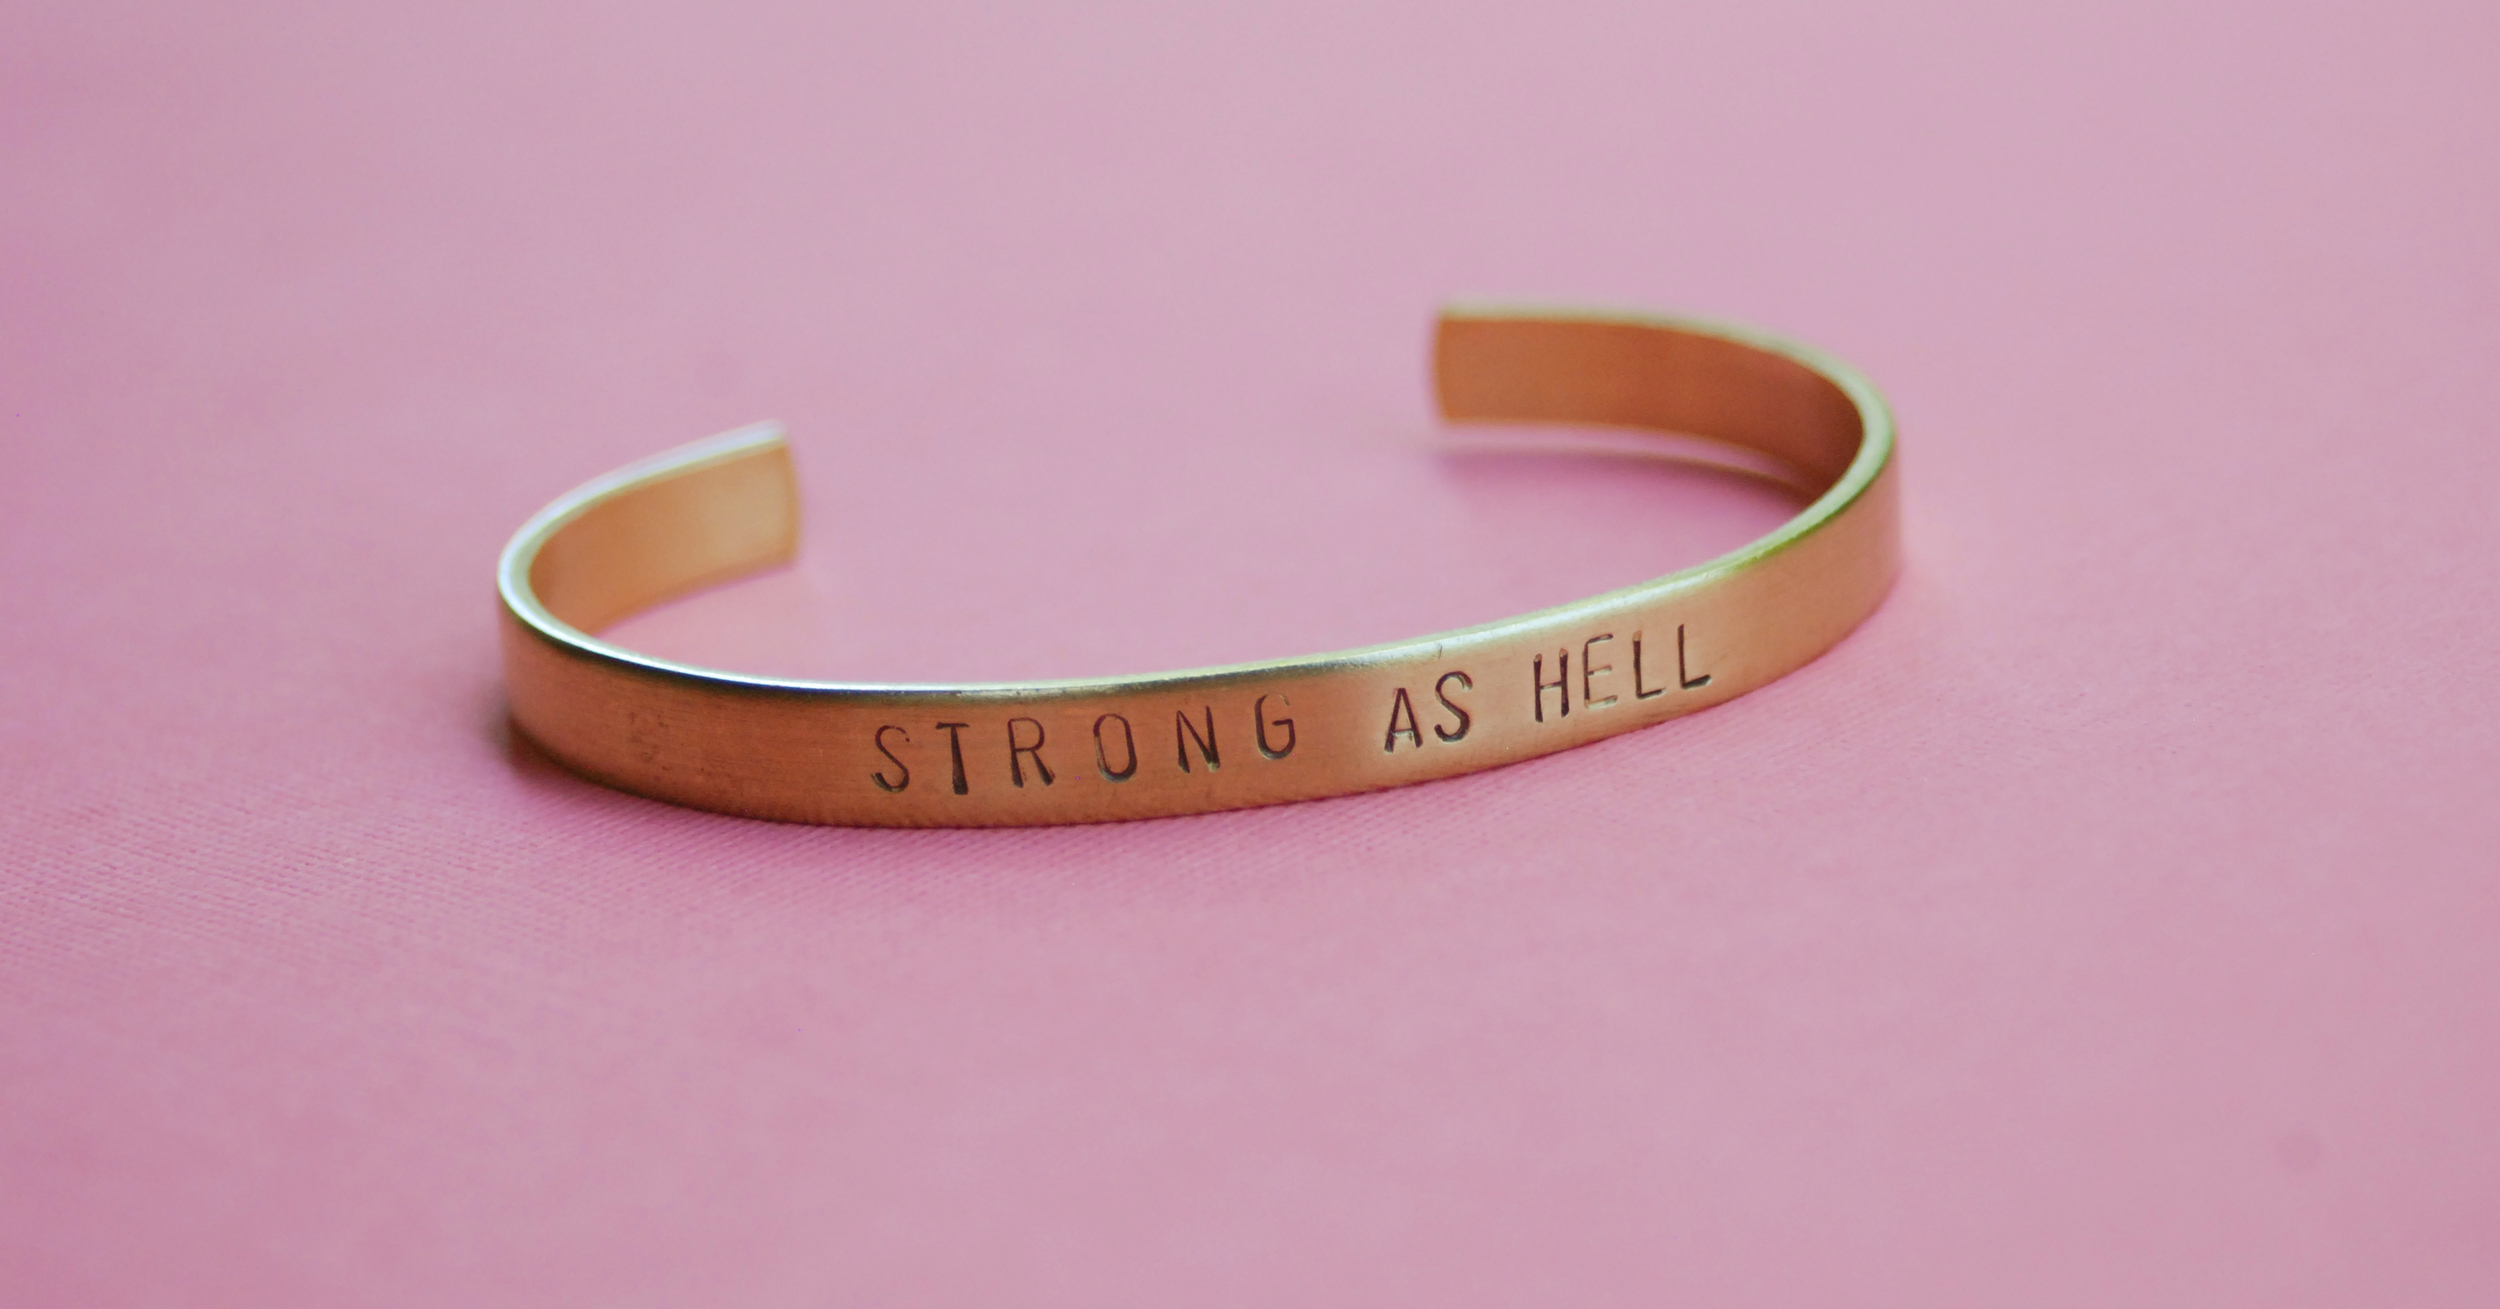 Strong as Hell Bracelet by Arkansas handmade jewelry designer Bang-Up Betty to benefit Arkansas Womens' Outreach in Little Rock.